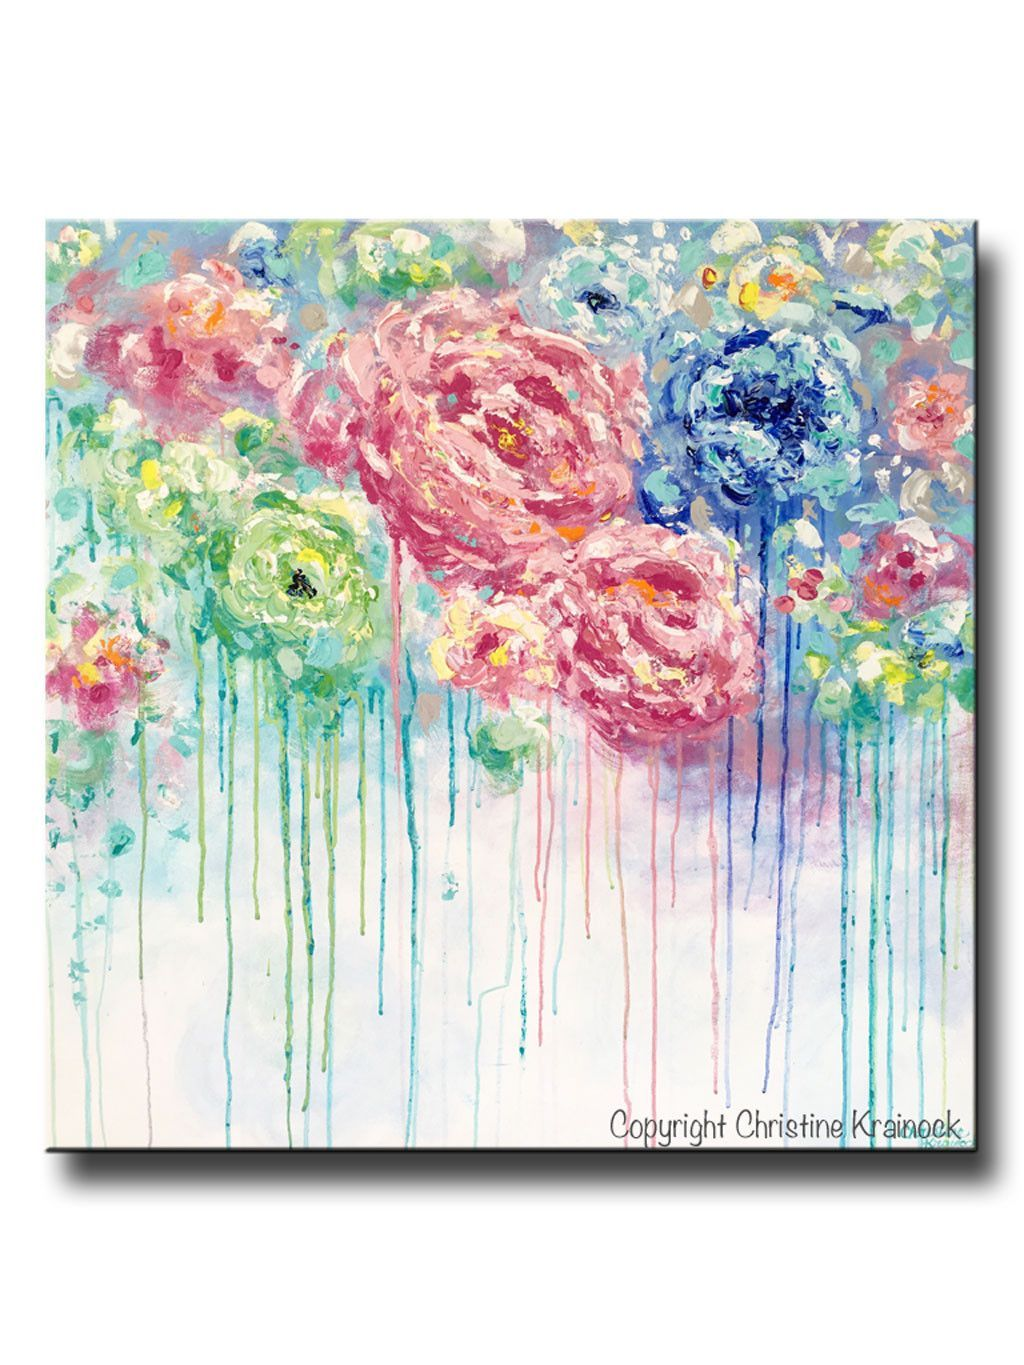 77d10d7d4747c3 ORIGINAL Art Abstract Painting Flowers Blue White Pink Floral Textured XL  Wall Art Colorful Peonies - Christine Krainock Art - Contemporary Art by  Christine ...